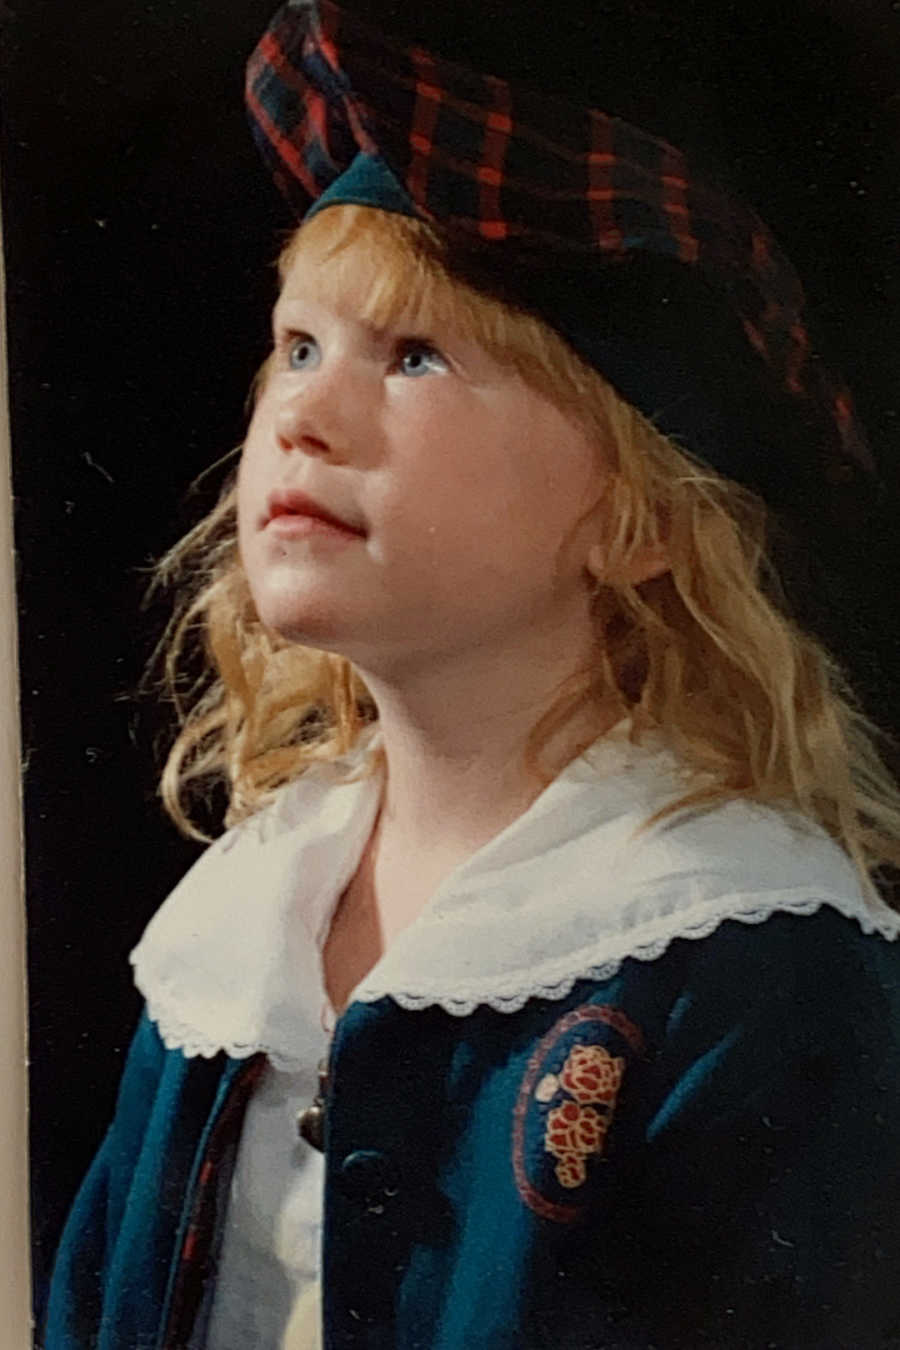 young girl in costume